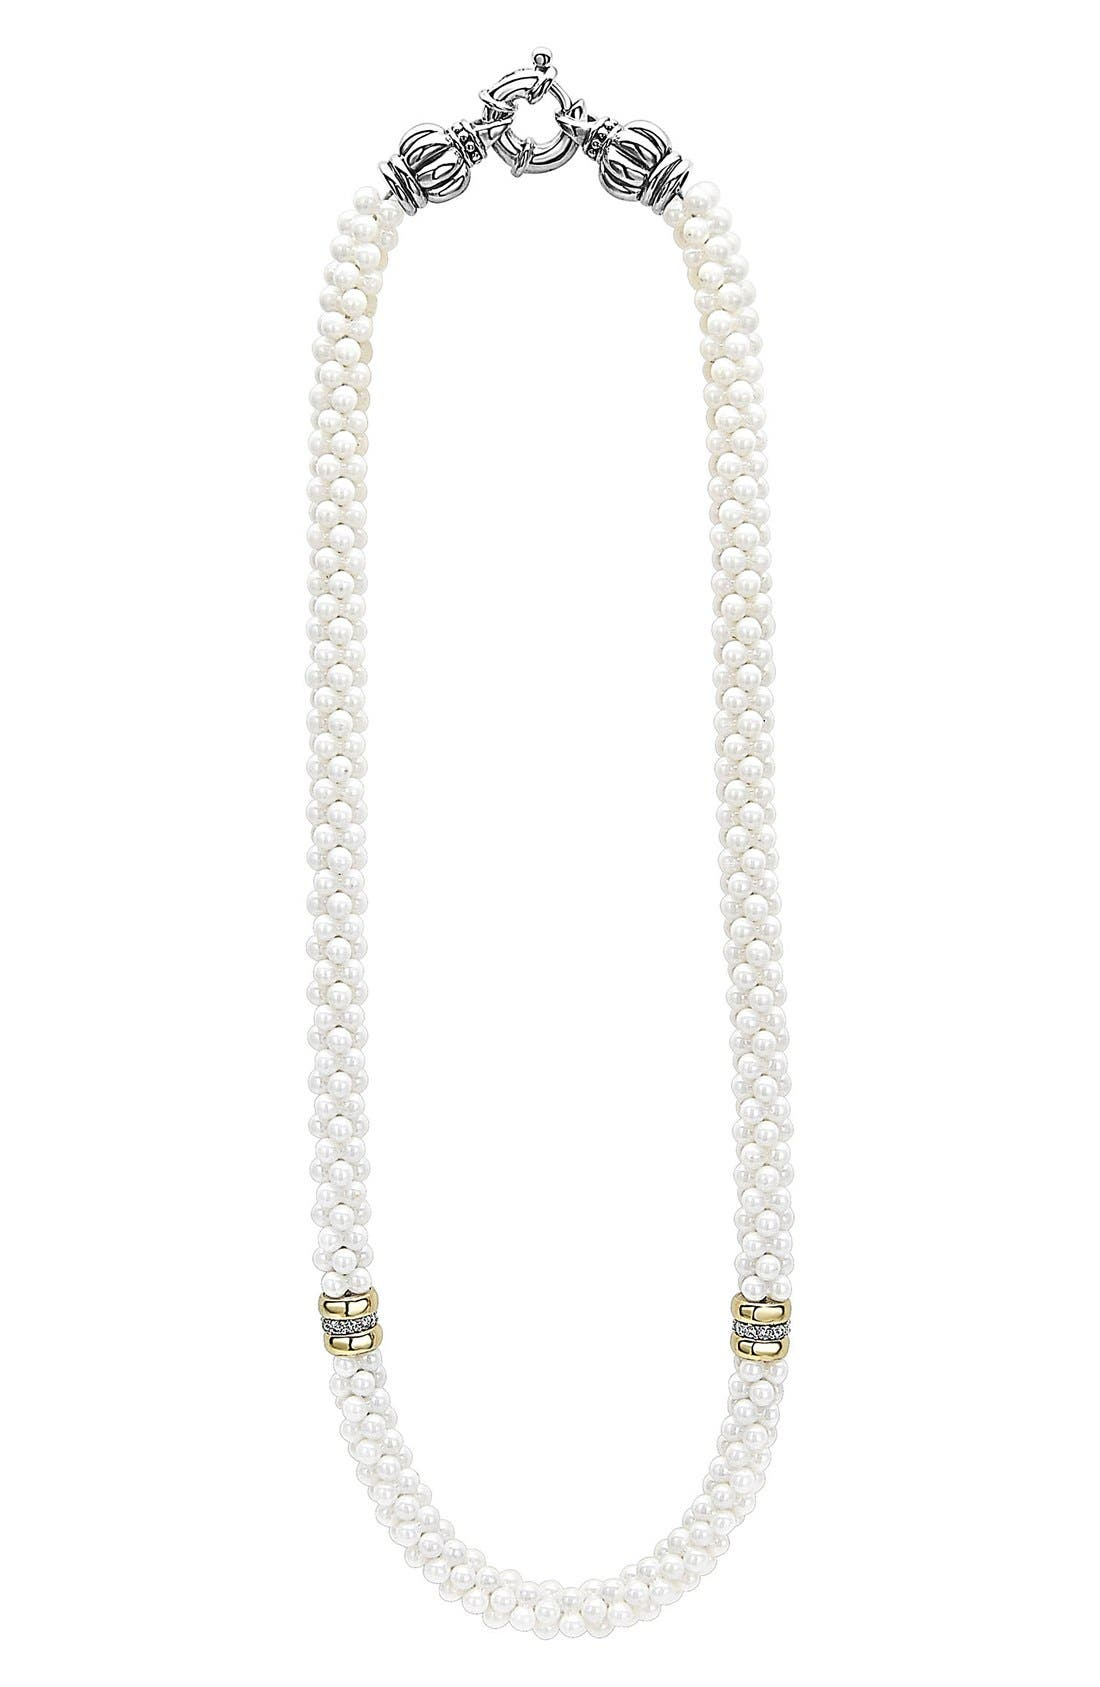 'White Caviar' 7mm Beaded Diamond Station Necklace,                             Main thumbnail 1, color,                             White Caviar/ Yellow Gold